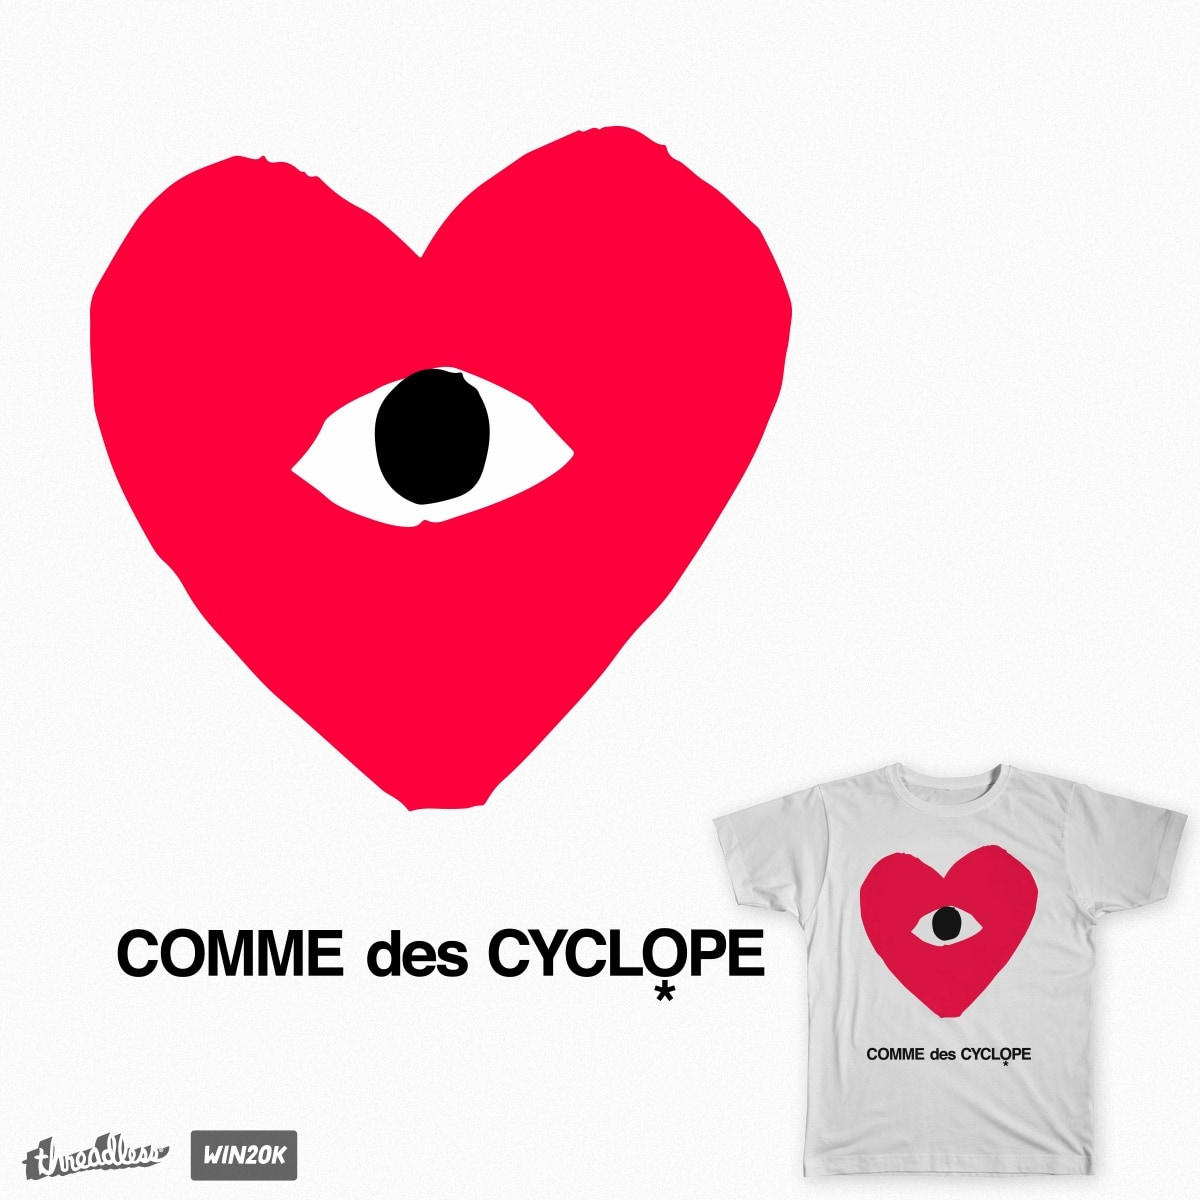 COMME_des_CYCLOPE by izzycon on Threadless